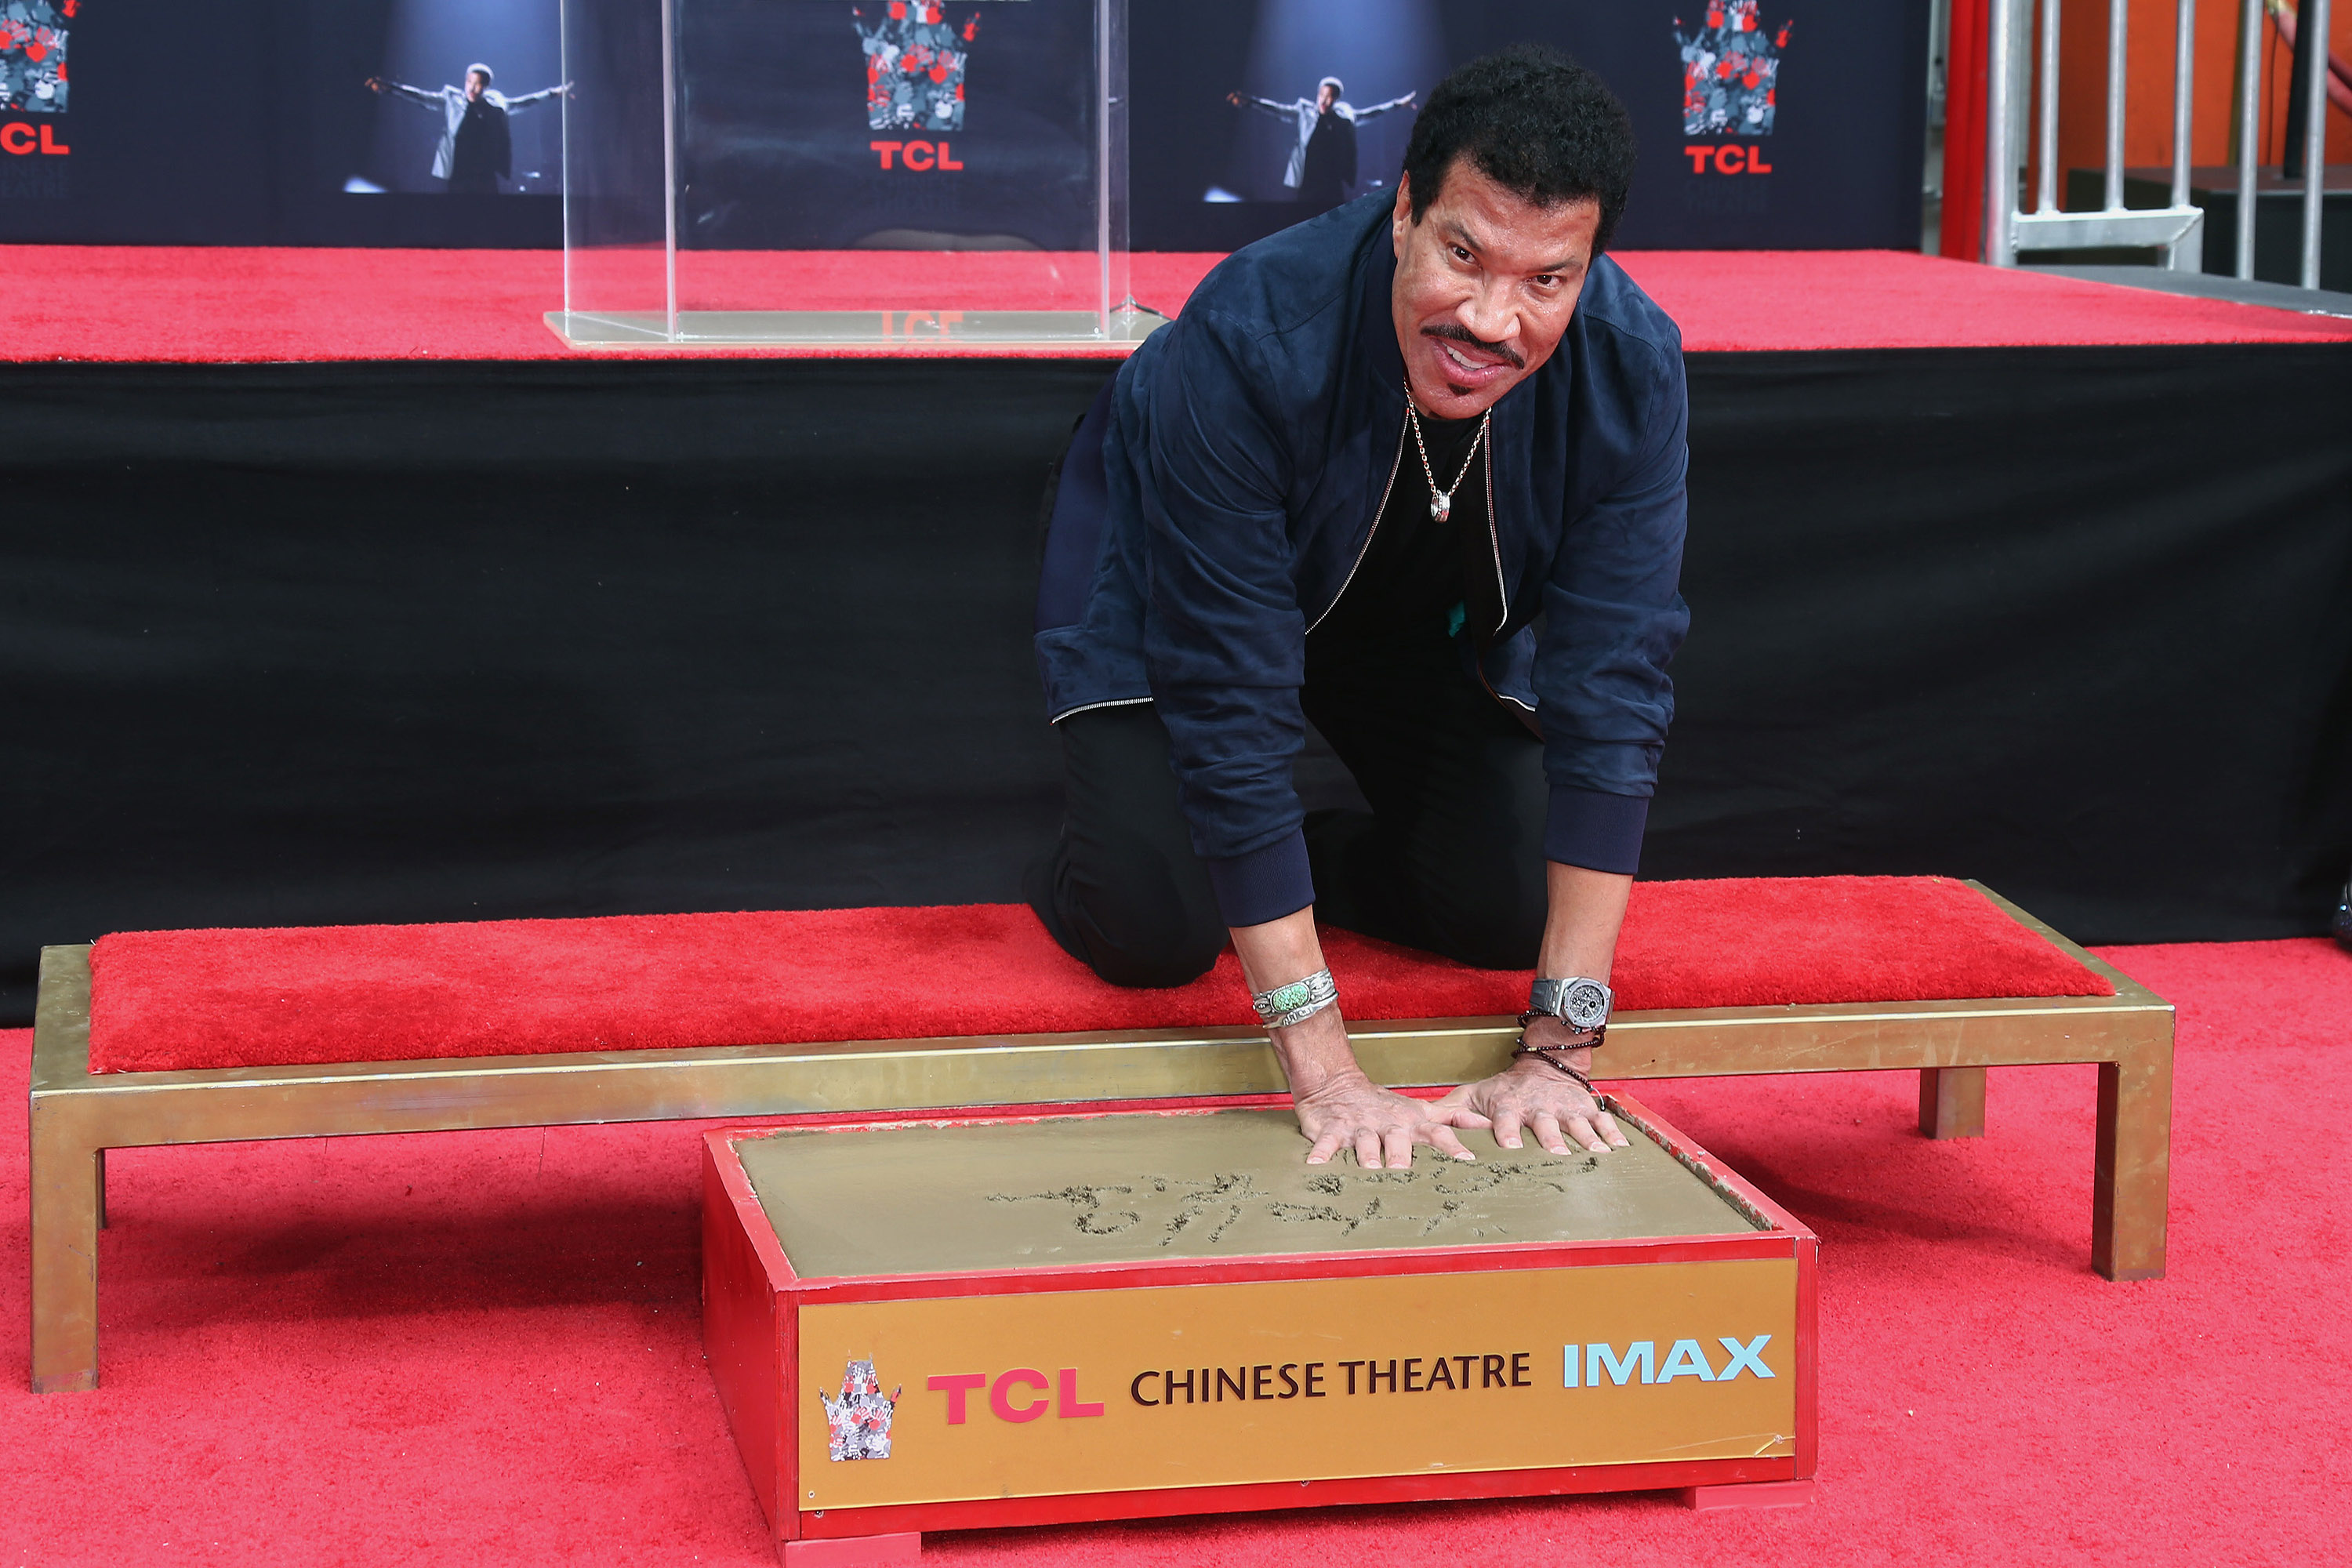 Lionel Richie handprint ceremony in Hollywood